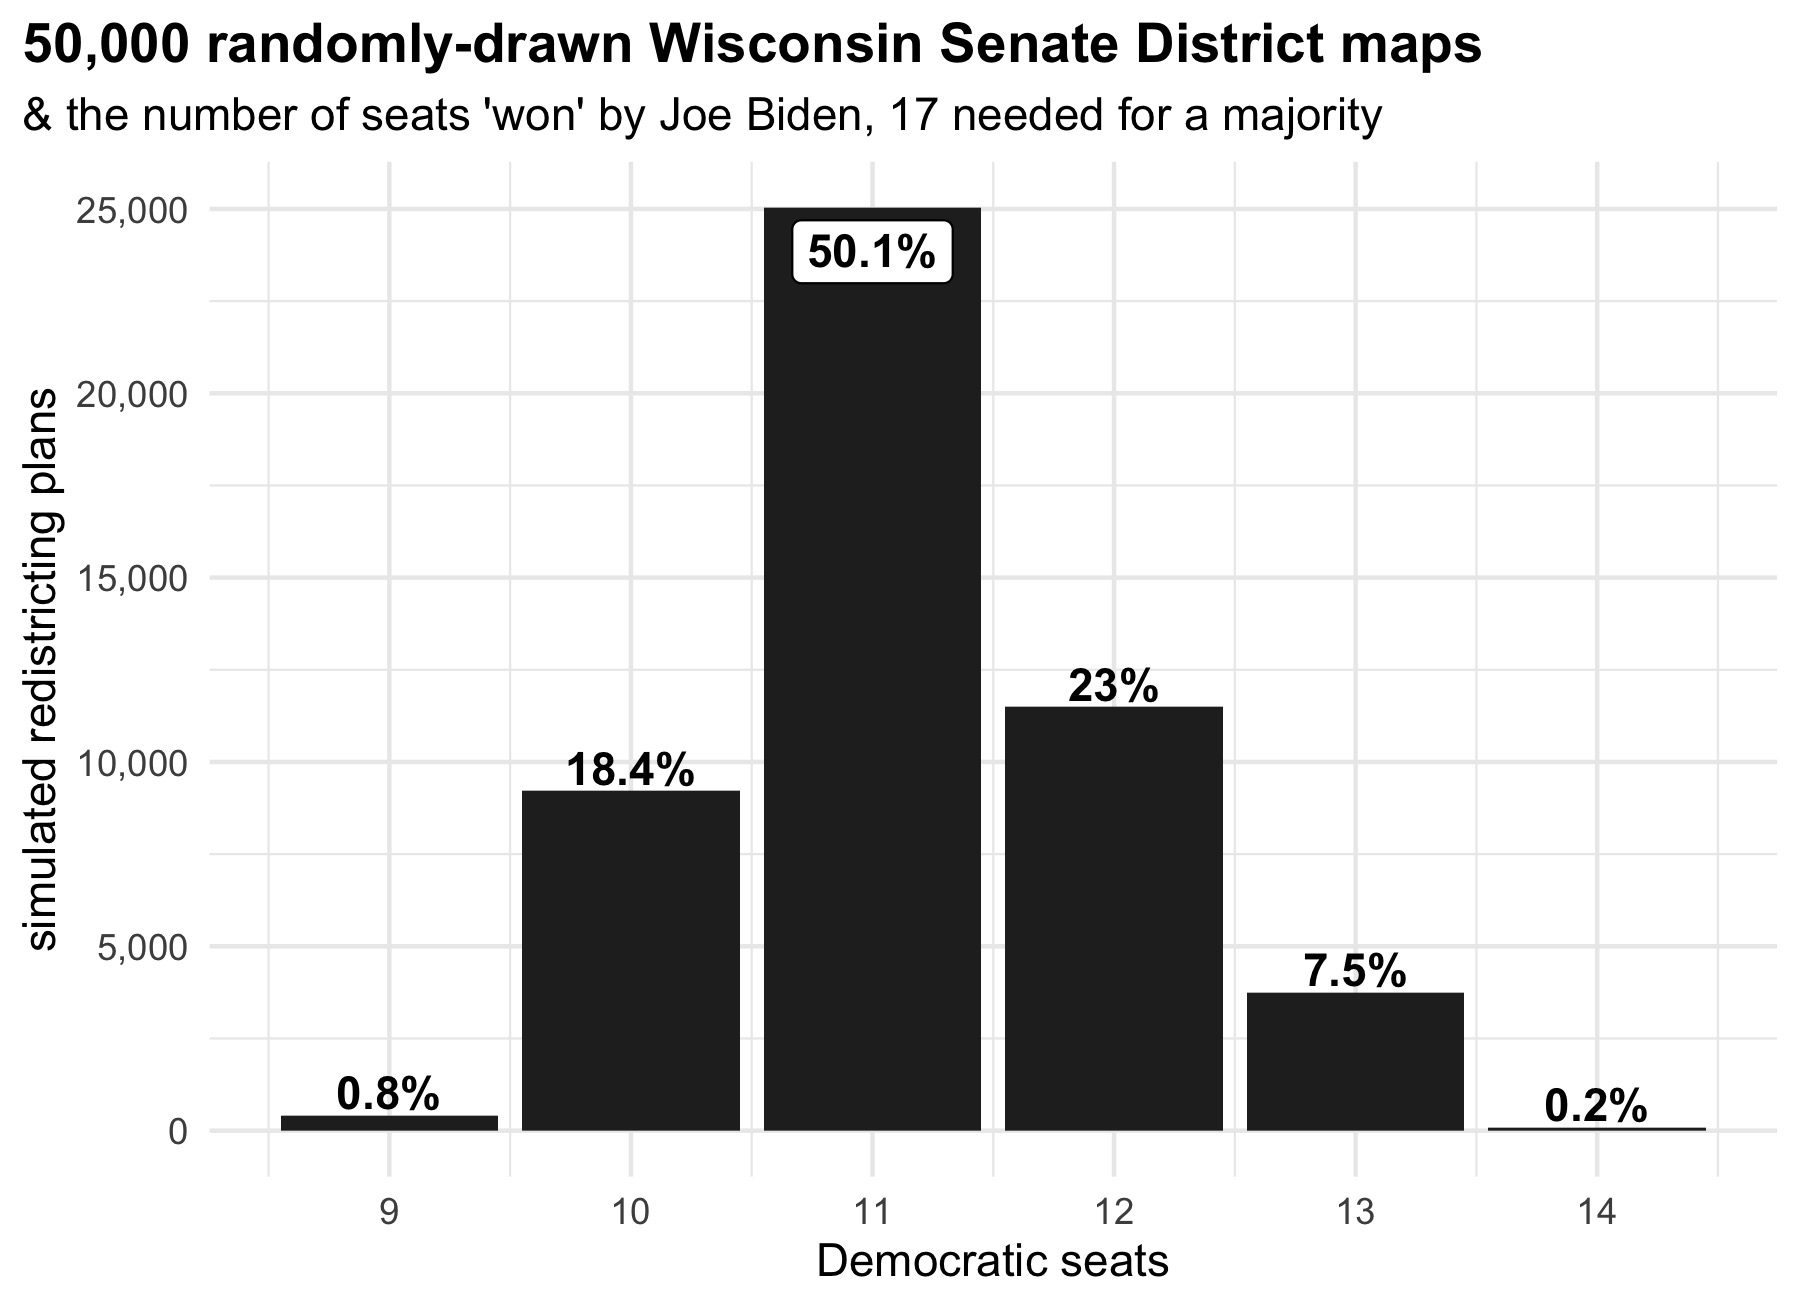 histogram of total seats won by Democrats in the ensemble of 50,000 random maps